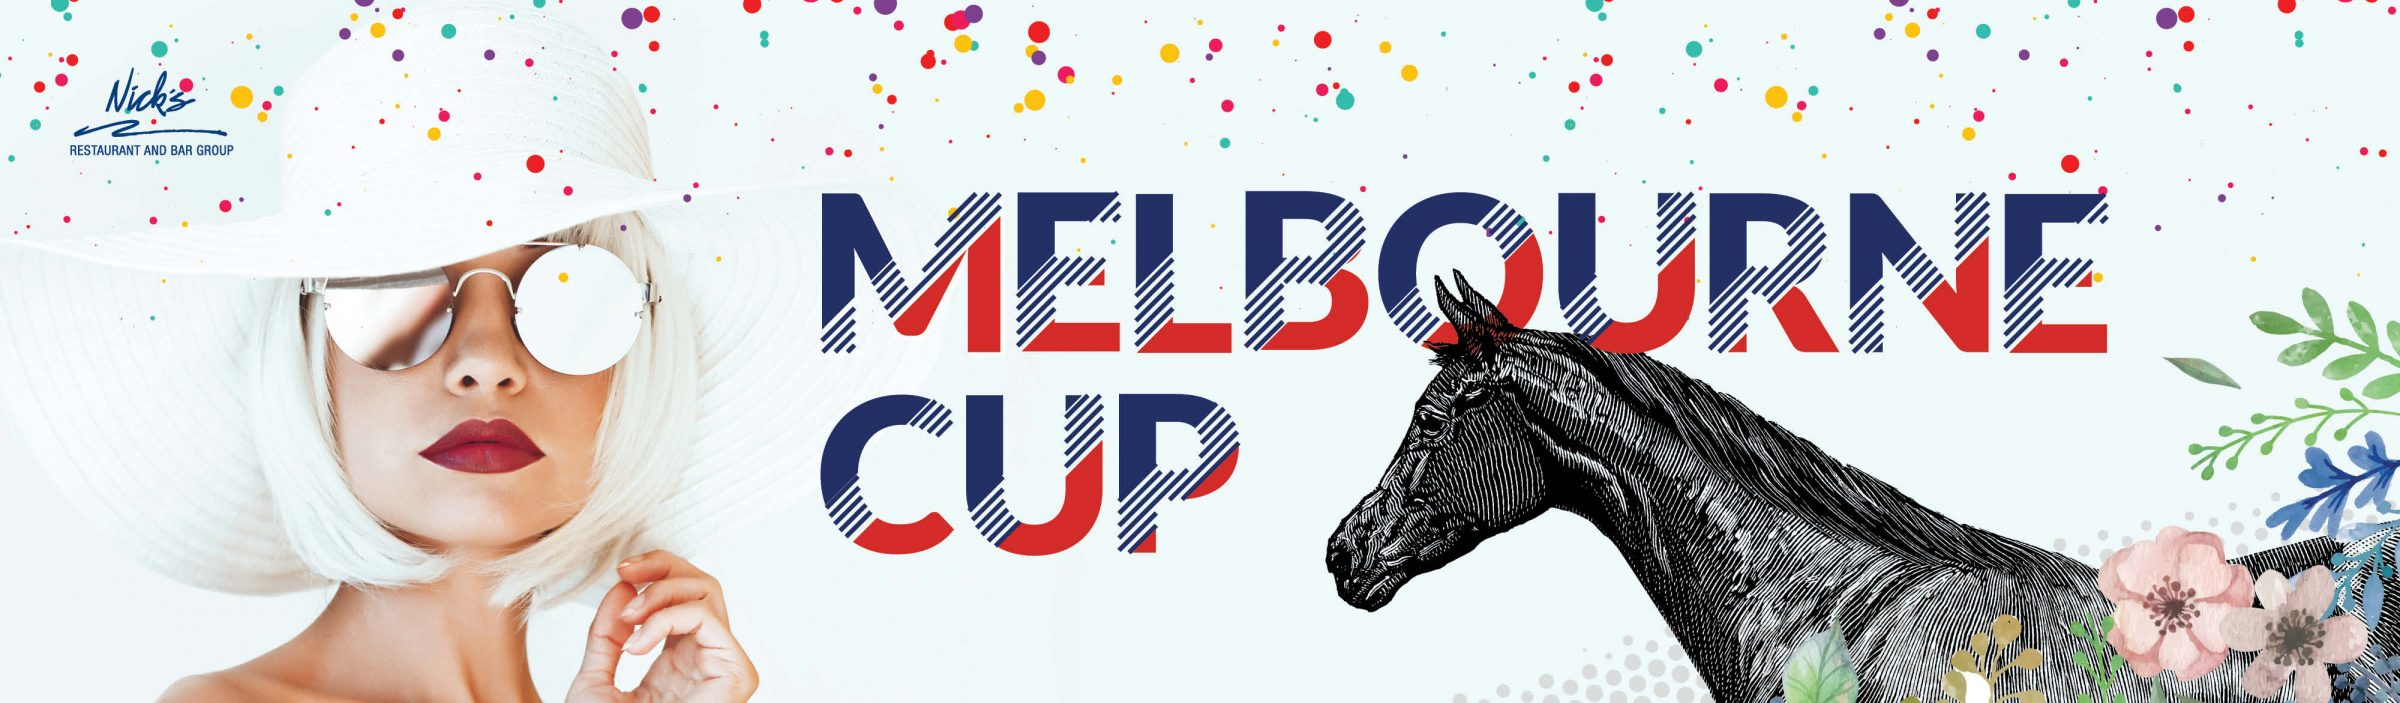 Melbourne Cup Lunch at any of Nick's 6 Ionic Venues | Nick's Restaurant & Bar Group